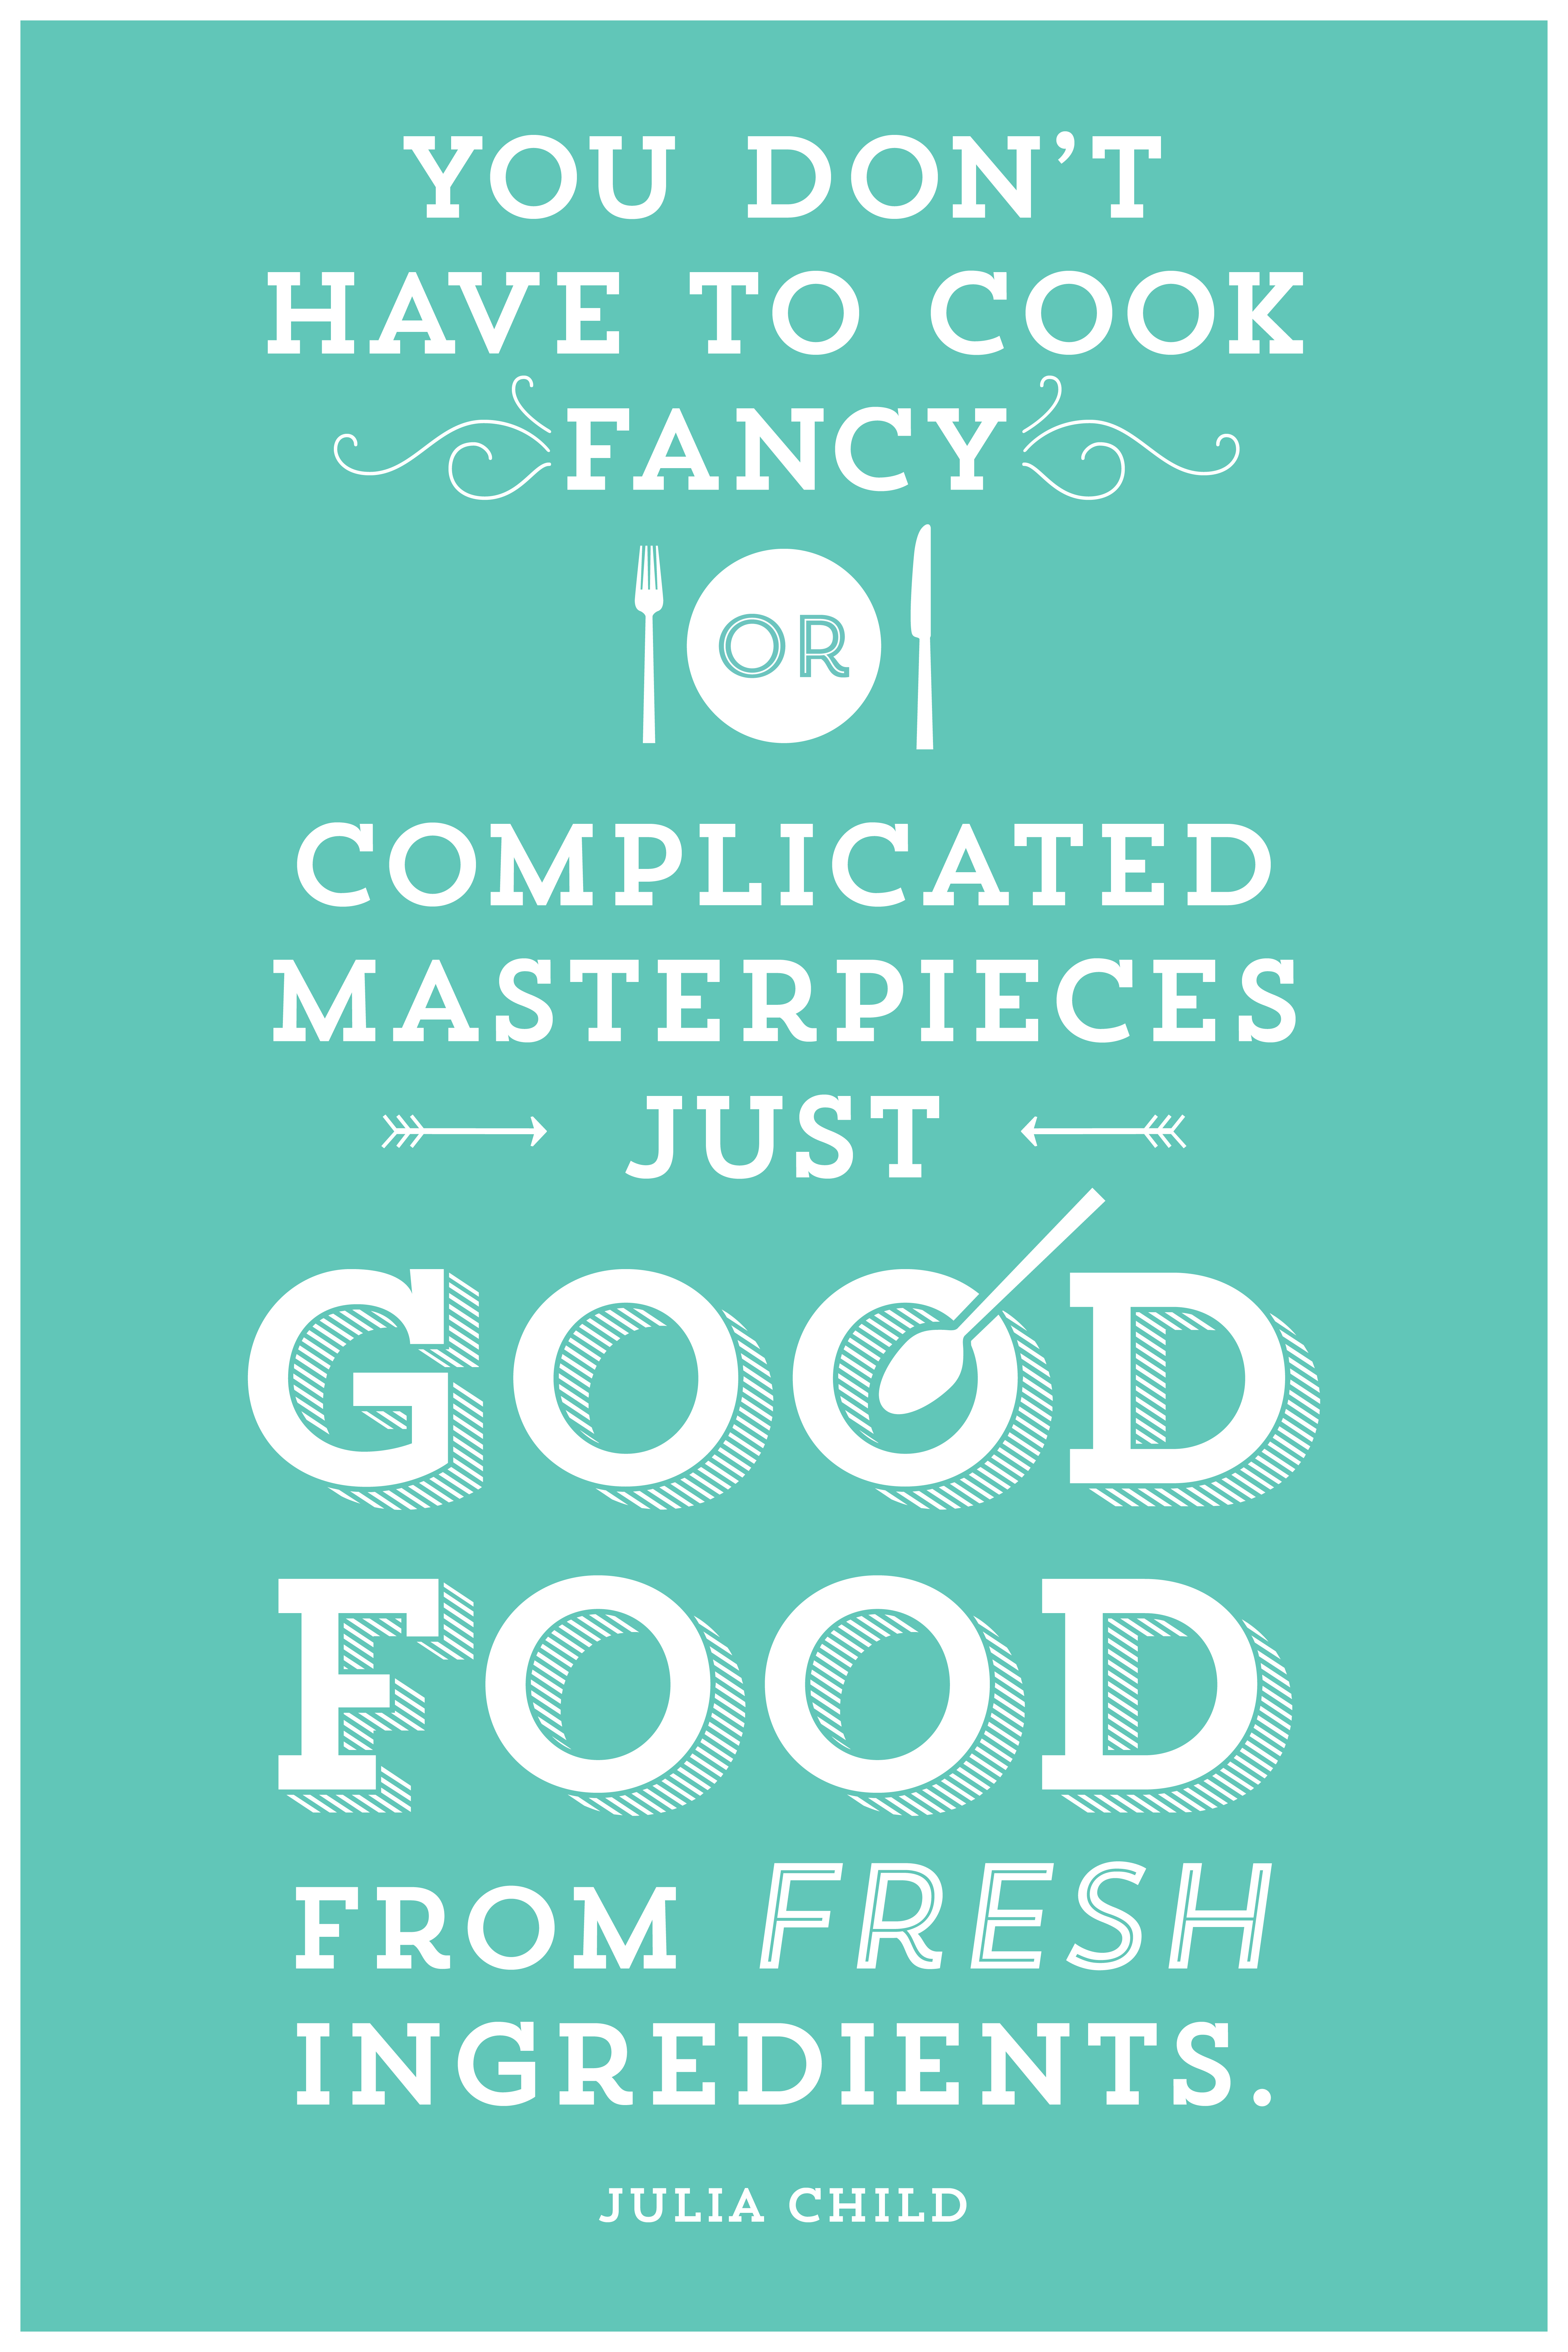 Beautiful Meal Ideas Quotes